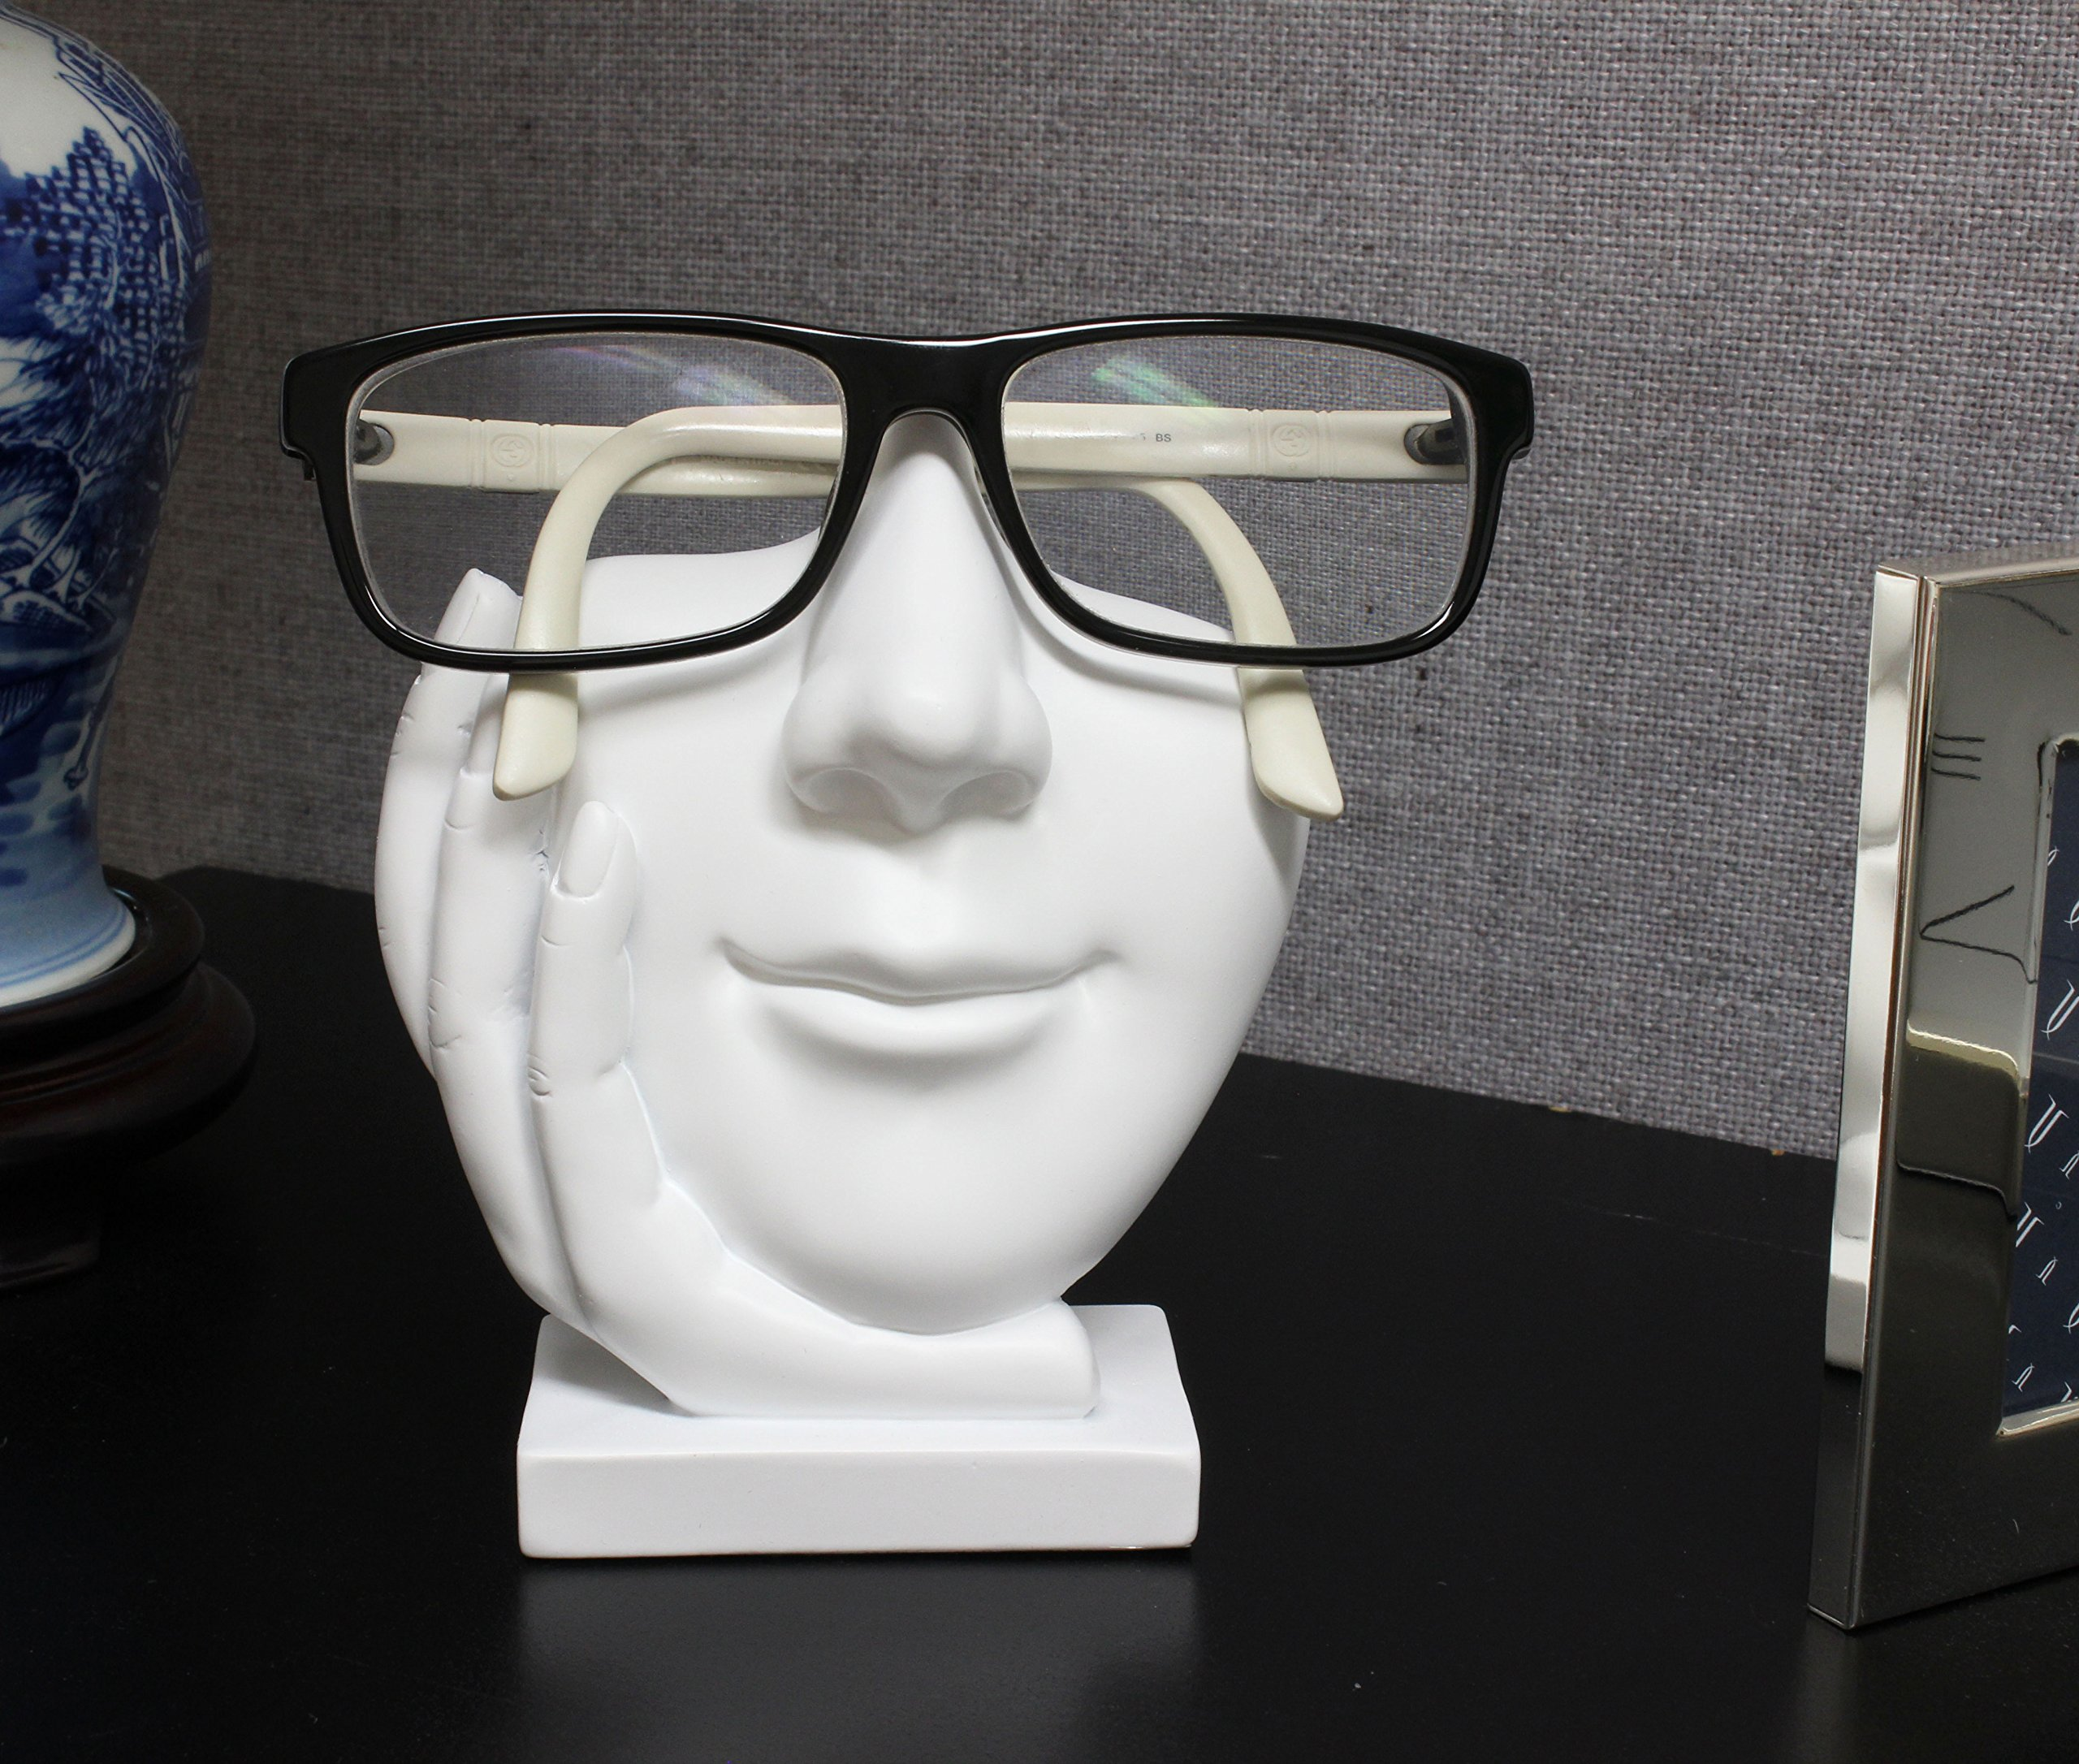 a82809444c2c4 Artsy Face Eyeglass Holder Stand - Sculpted Nose for Eyeglasses or  Sunglasses